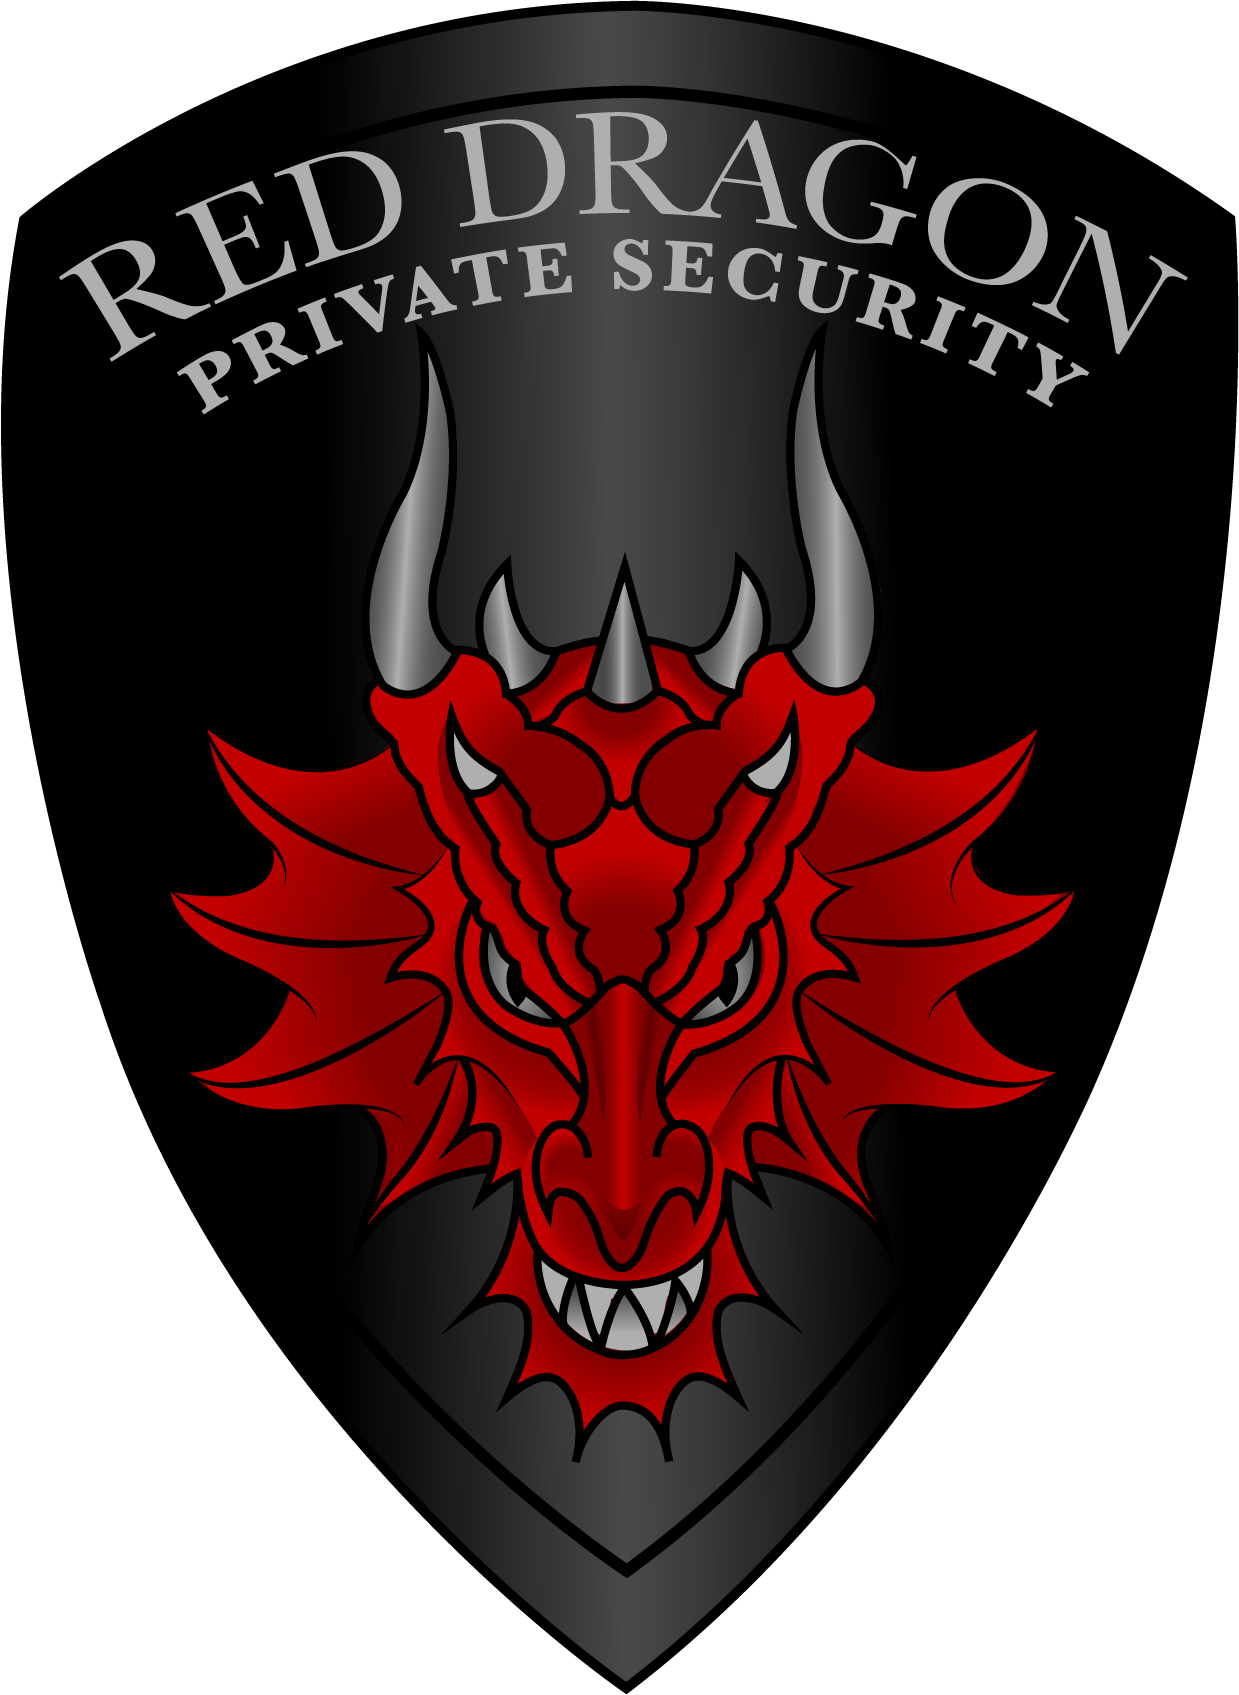 Private Security Services Red Dragon Private Security